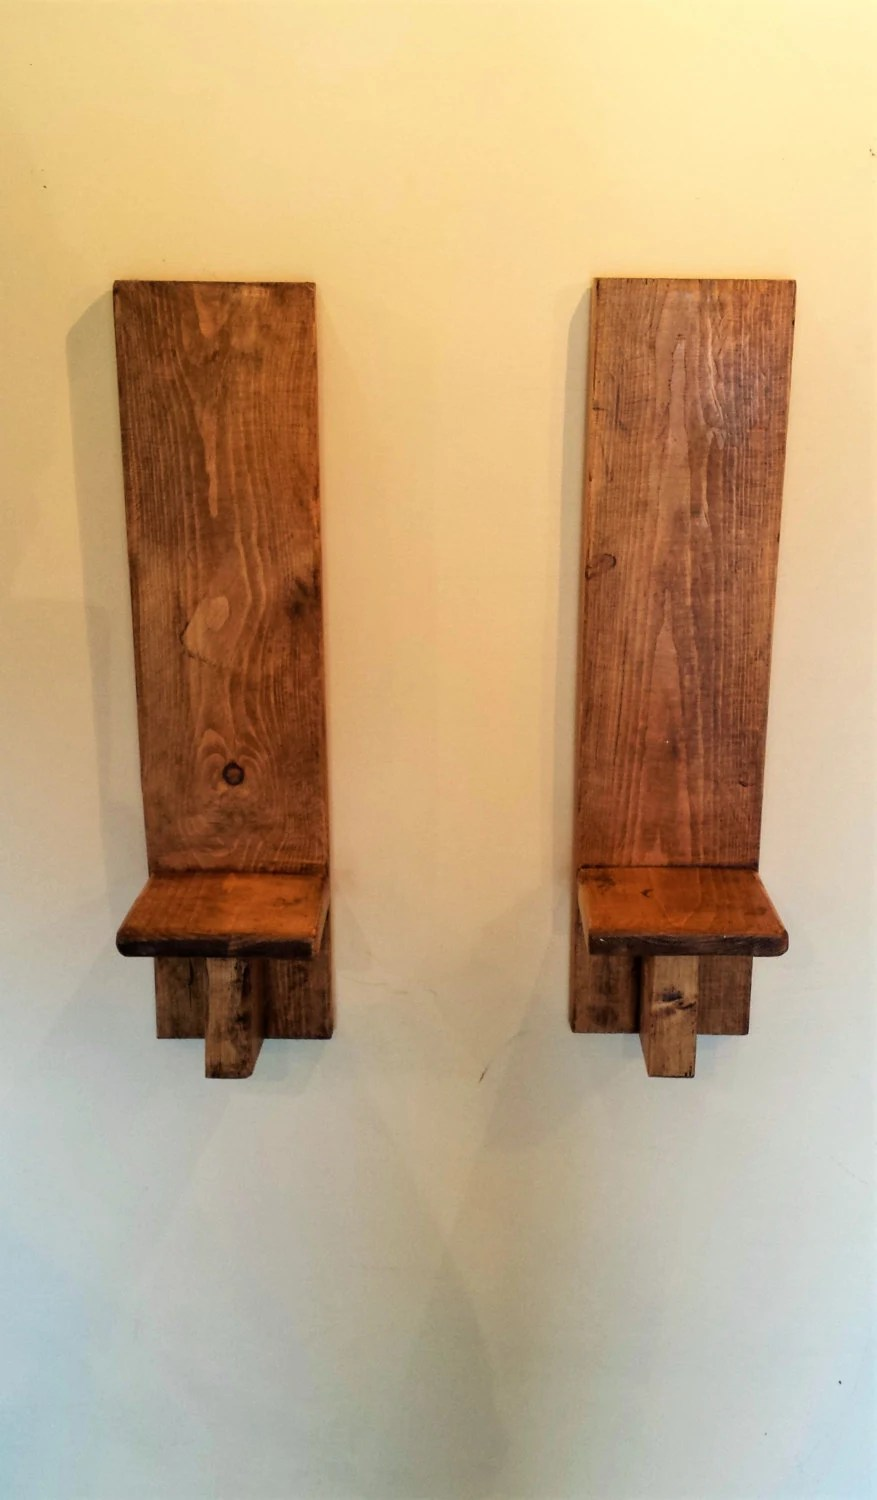 Wooden Wall Shelf Wood Shelves Wooden Wall Sconces Wall